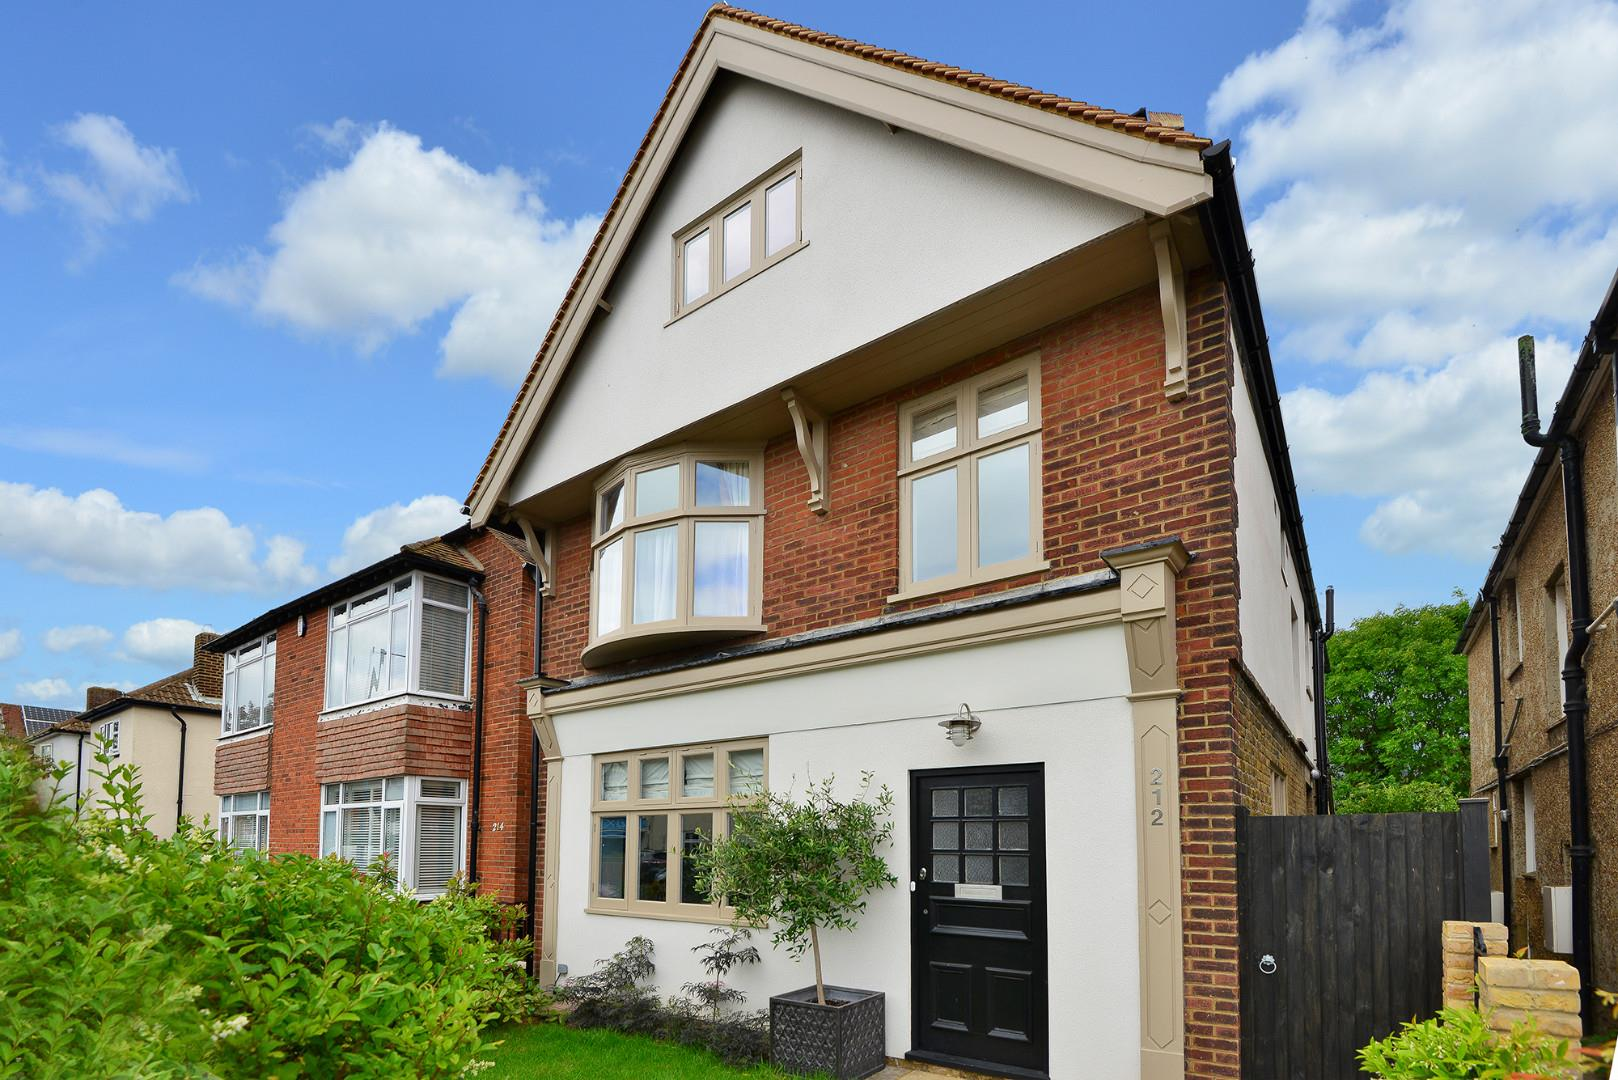 Property For Sale In Whitstable Tankerton